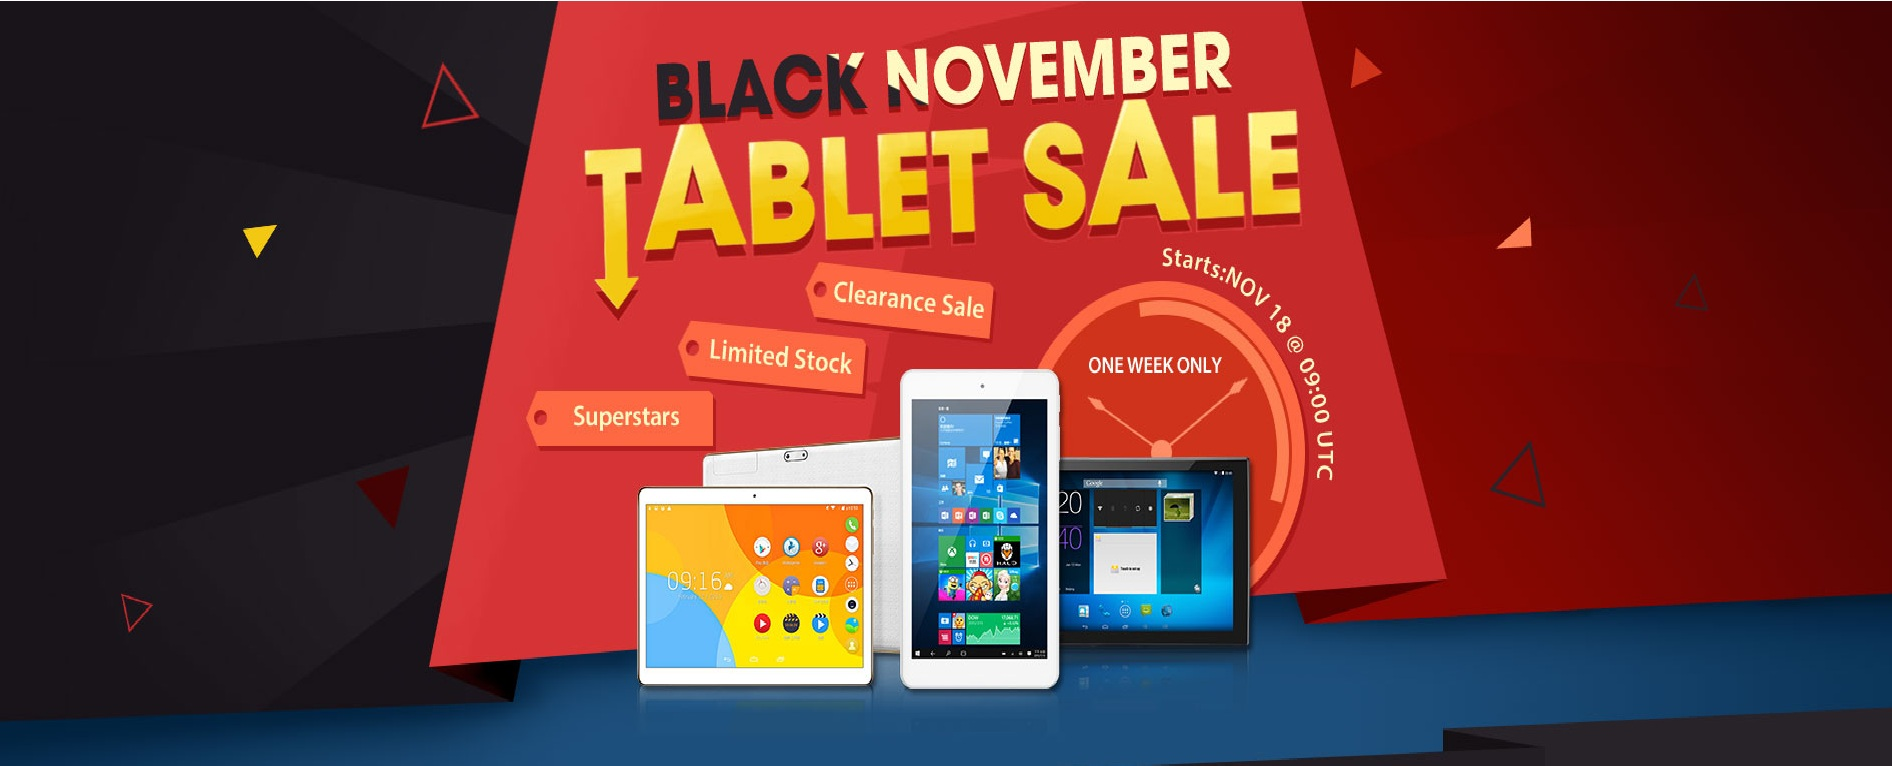 Black November Tablet Sale